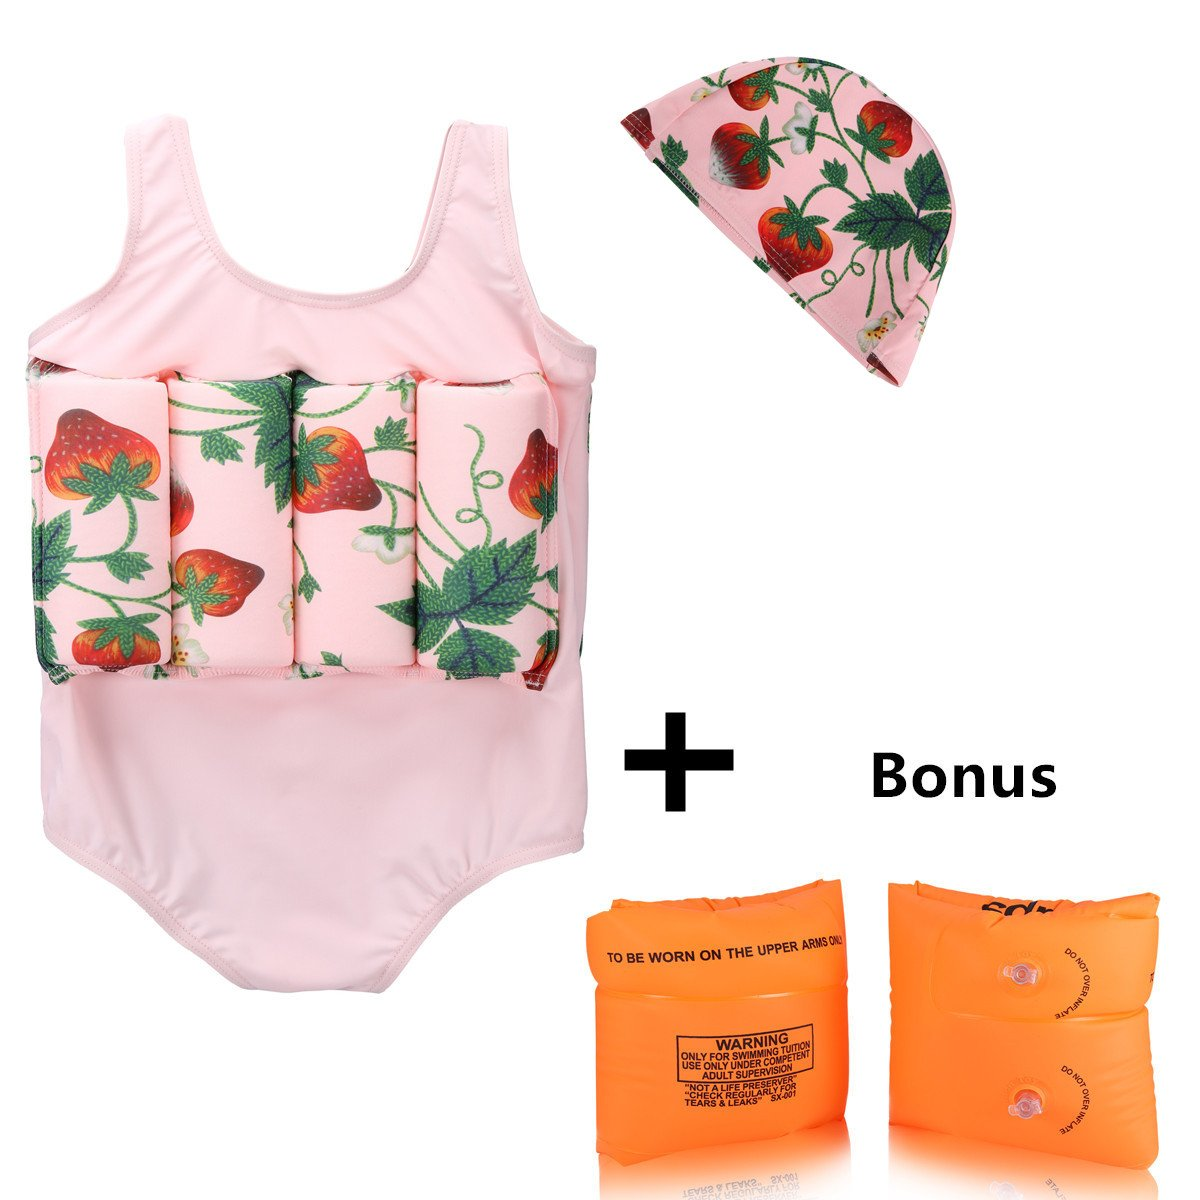 Wowelife Toddler Float Suit with Arm Bands Baby Floating Swimsuit with 8 Removable Buoyancy Sticks for Boys and Girls, 1-4 Years (Sweet Strawberry, M(Chest 60,Length 42cm))